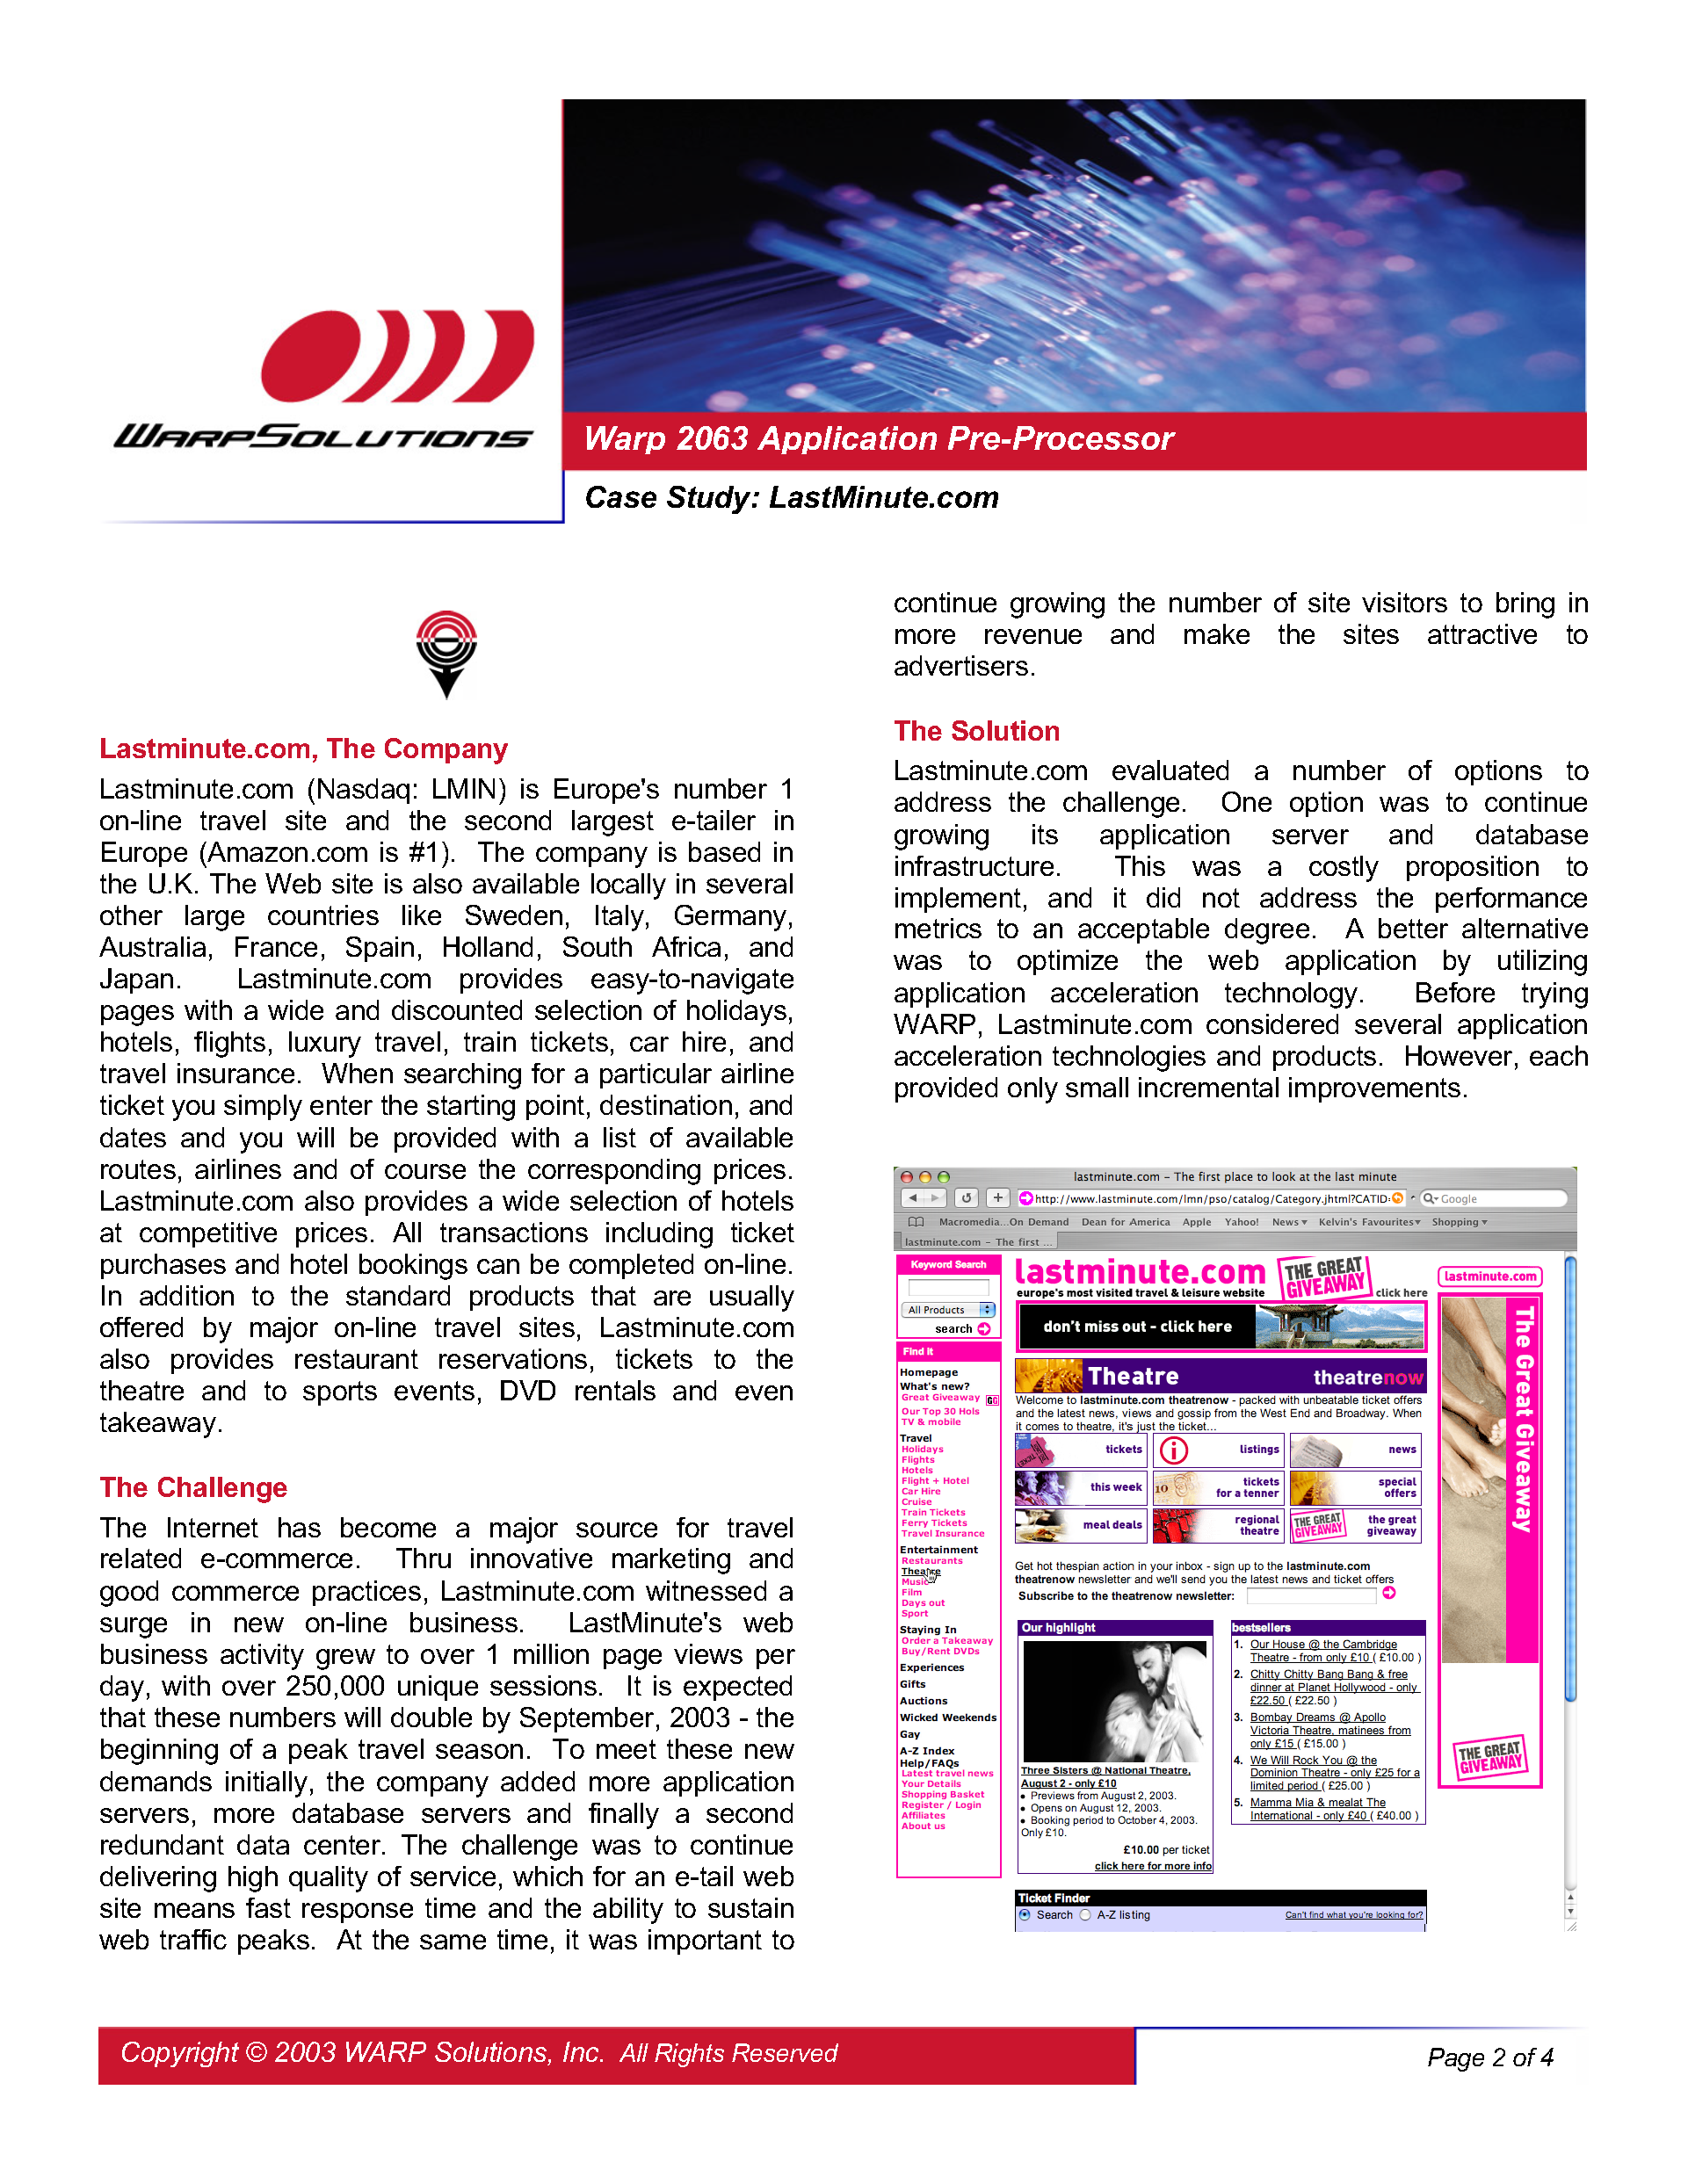 Case Study Lastminute_Page_2.png